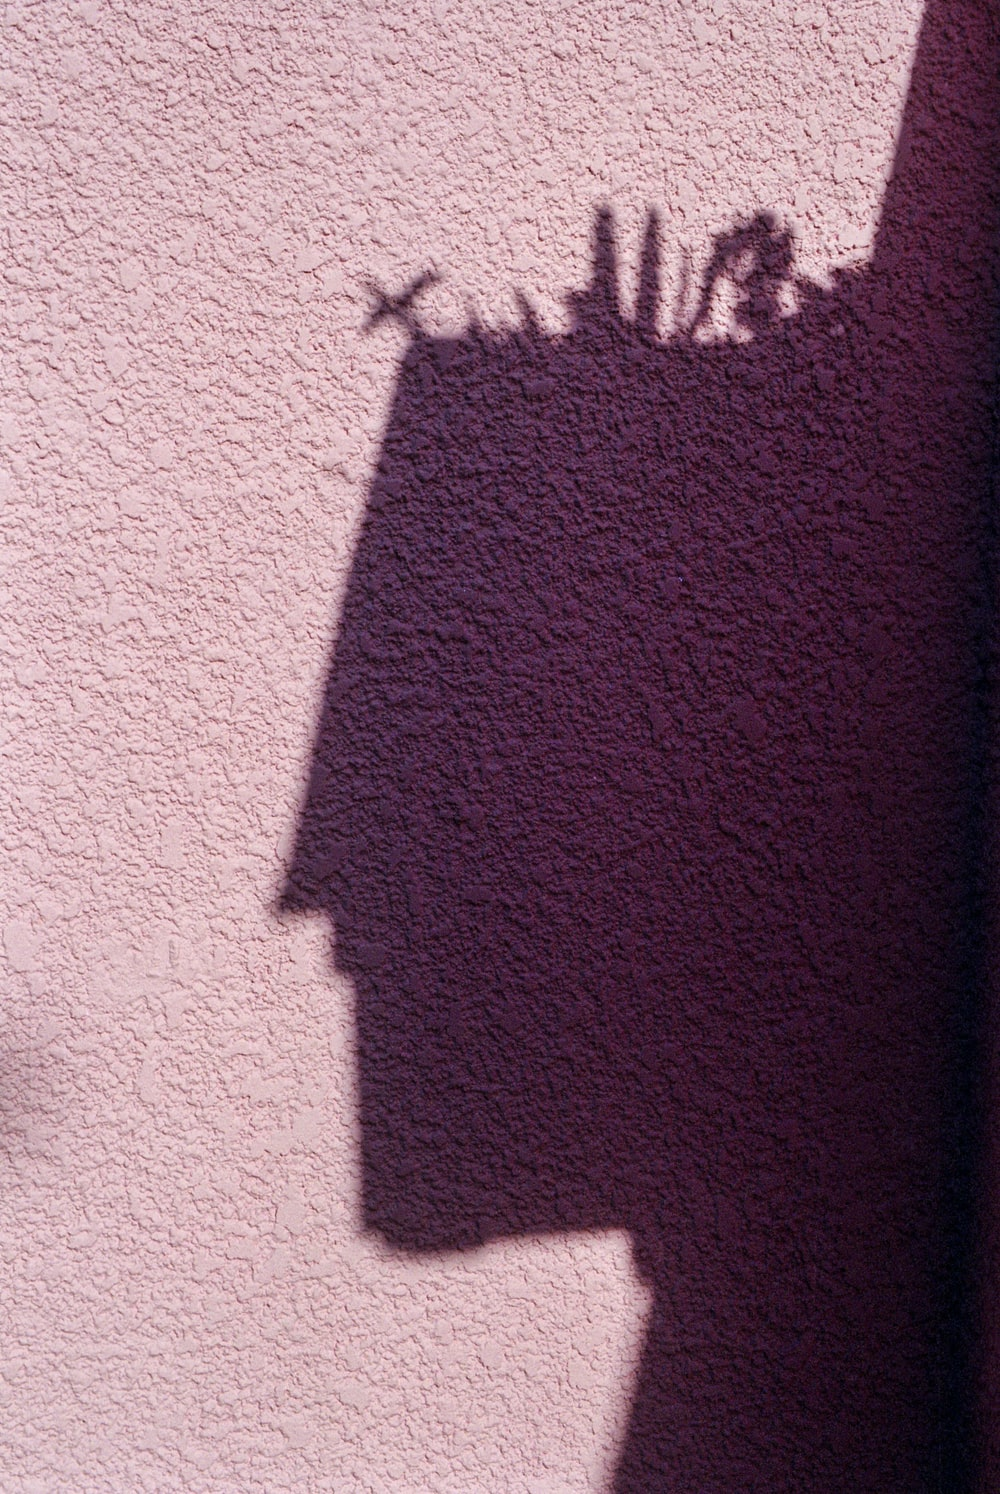 shadow of person on red concrete wall